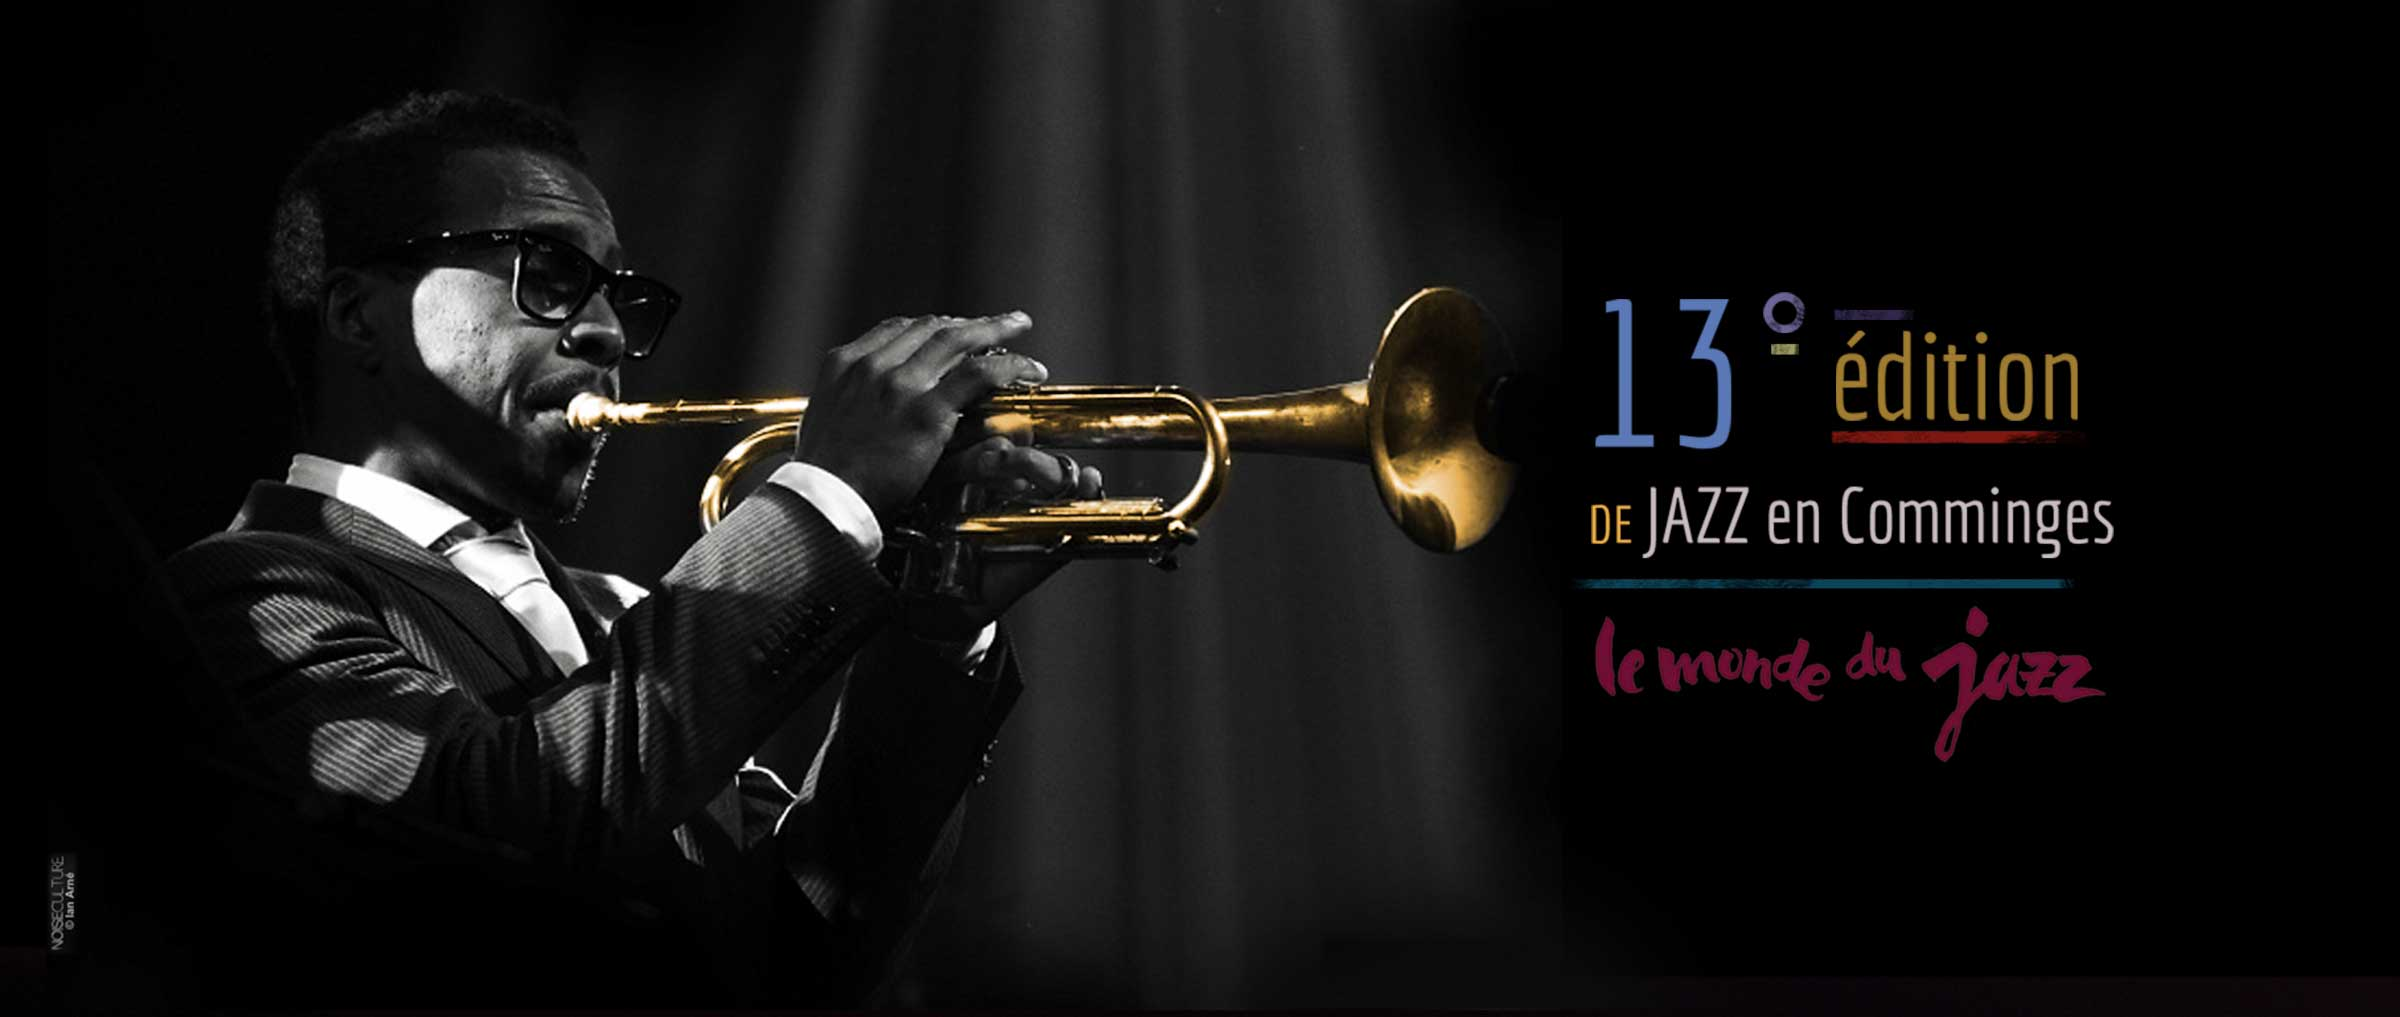 Graphisme web culturel jazz